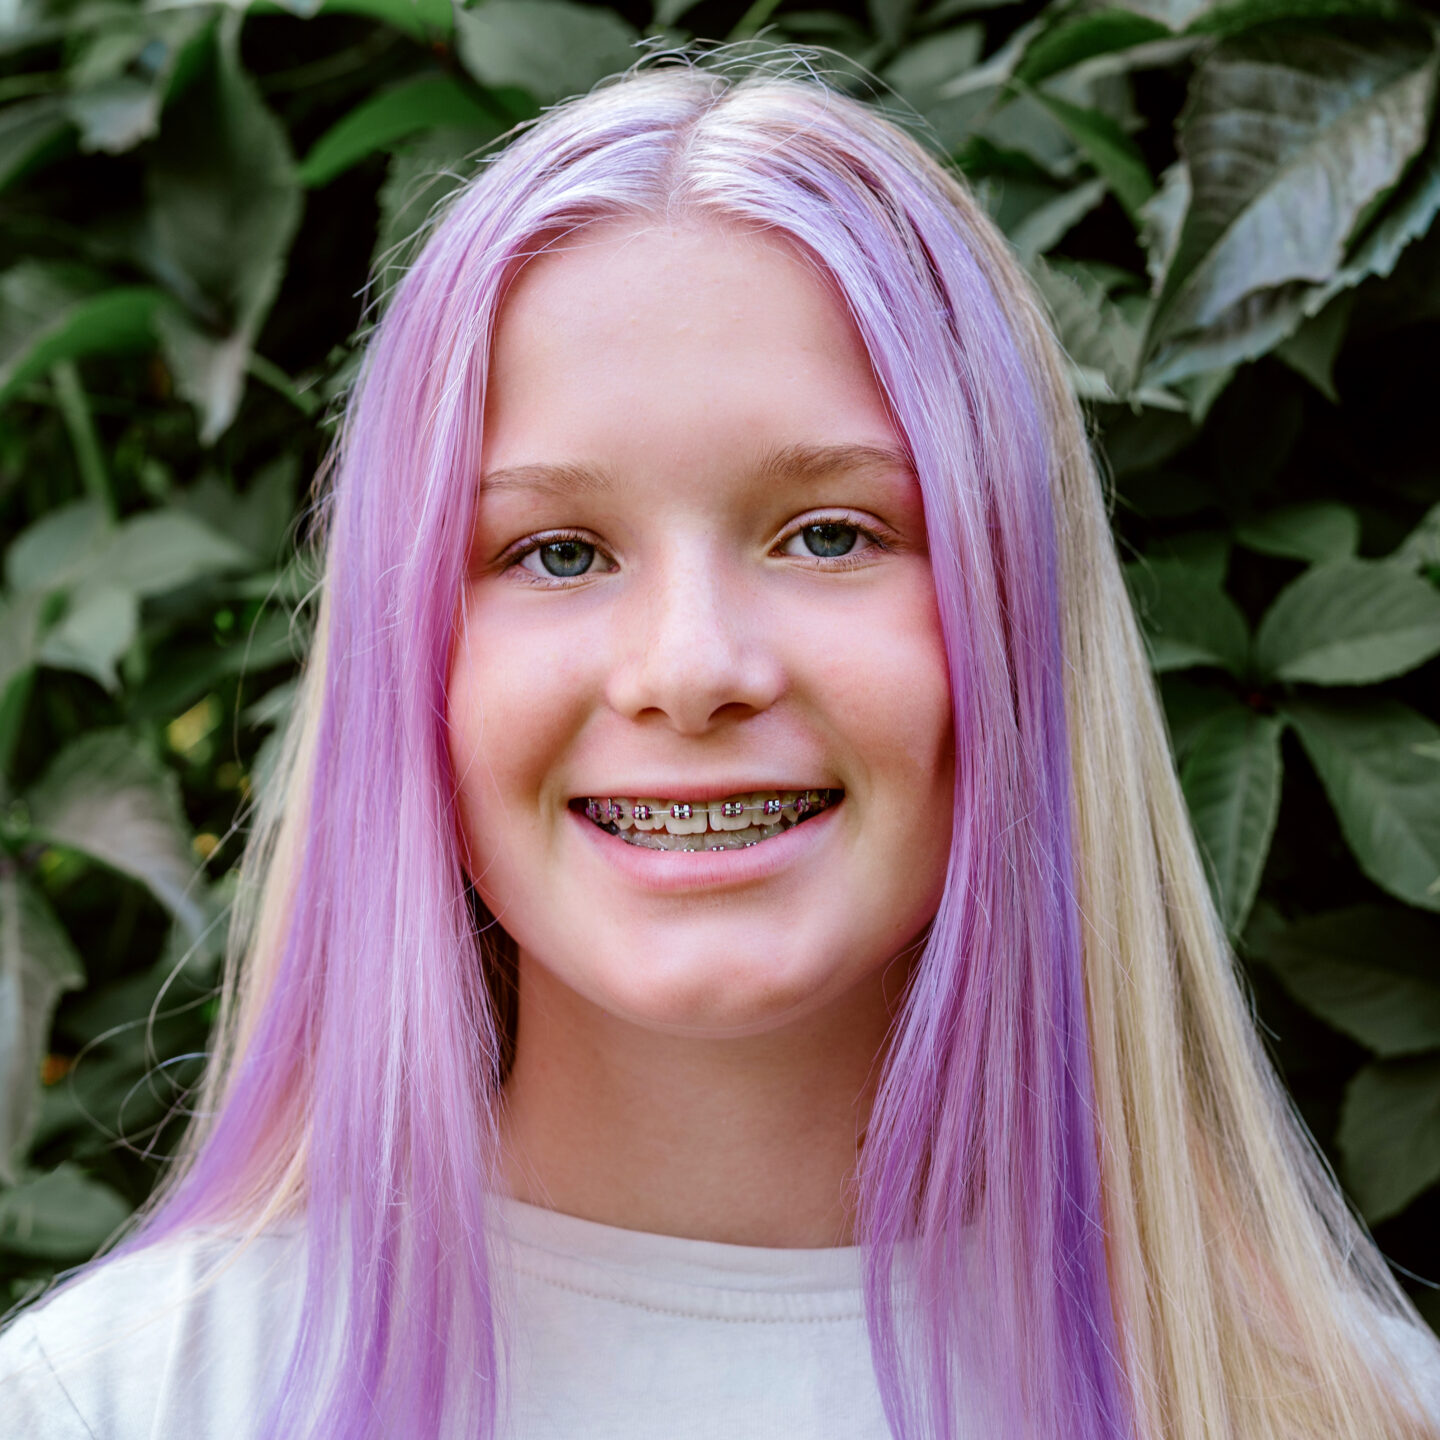 LGBTQ young person with braces smiling.